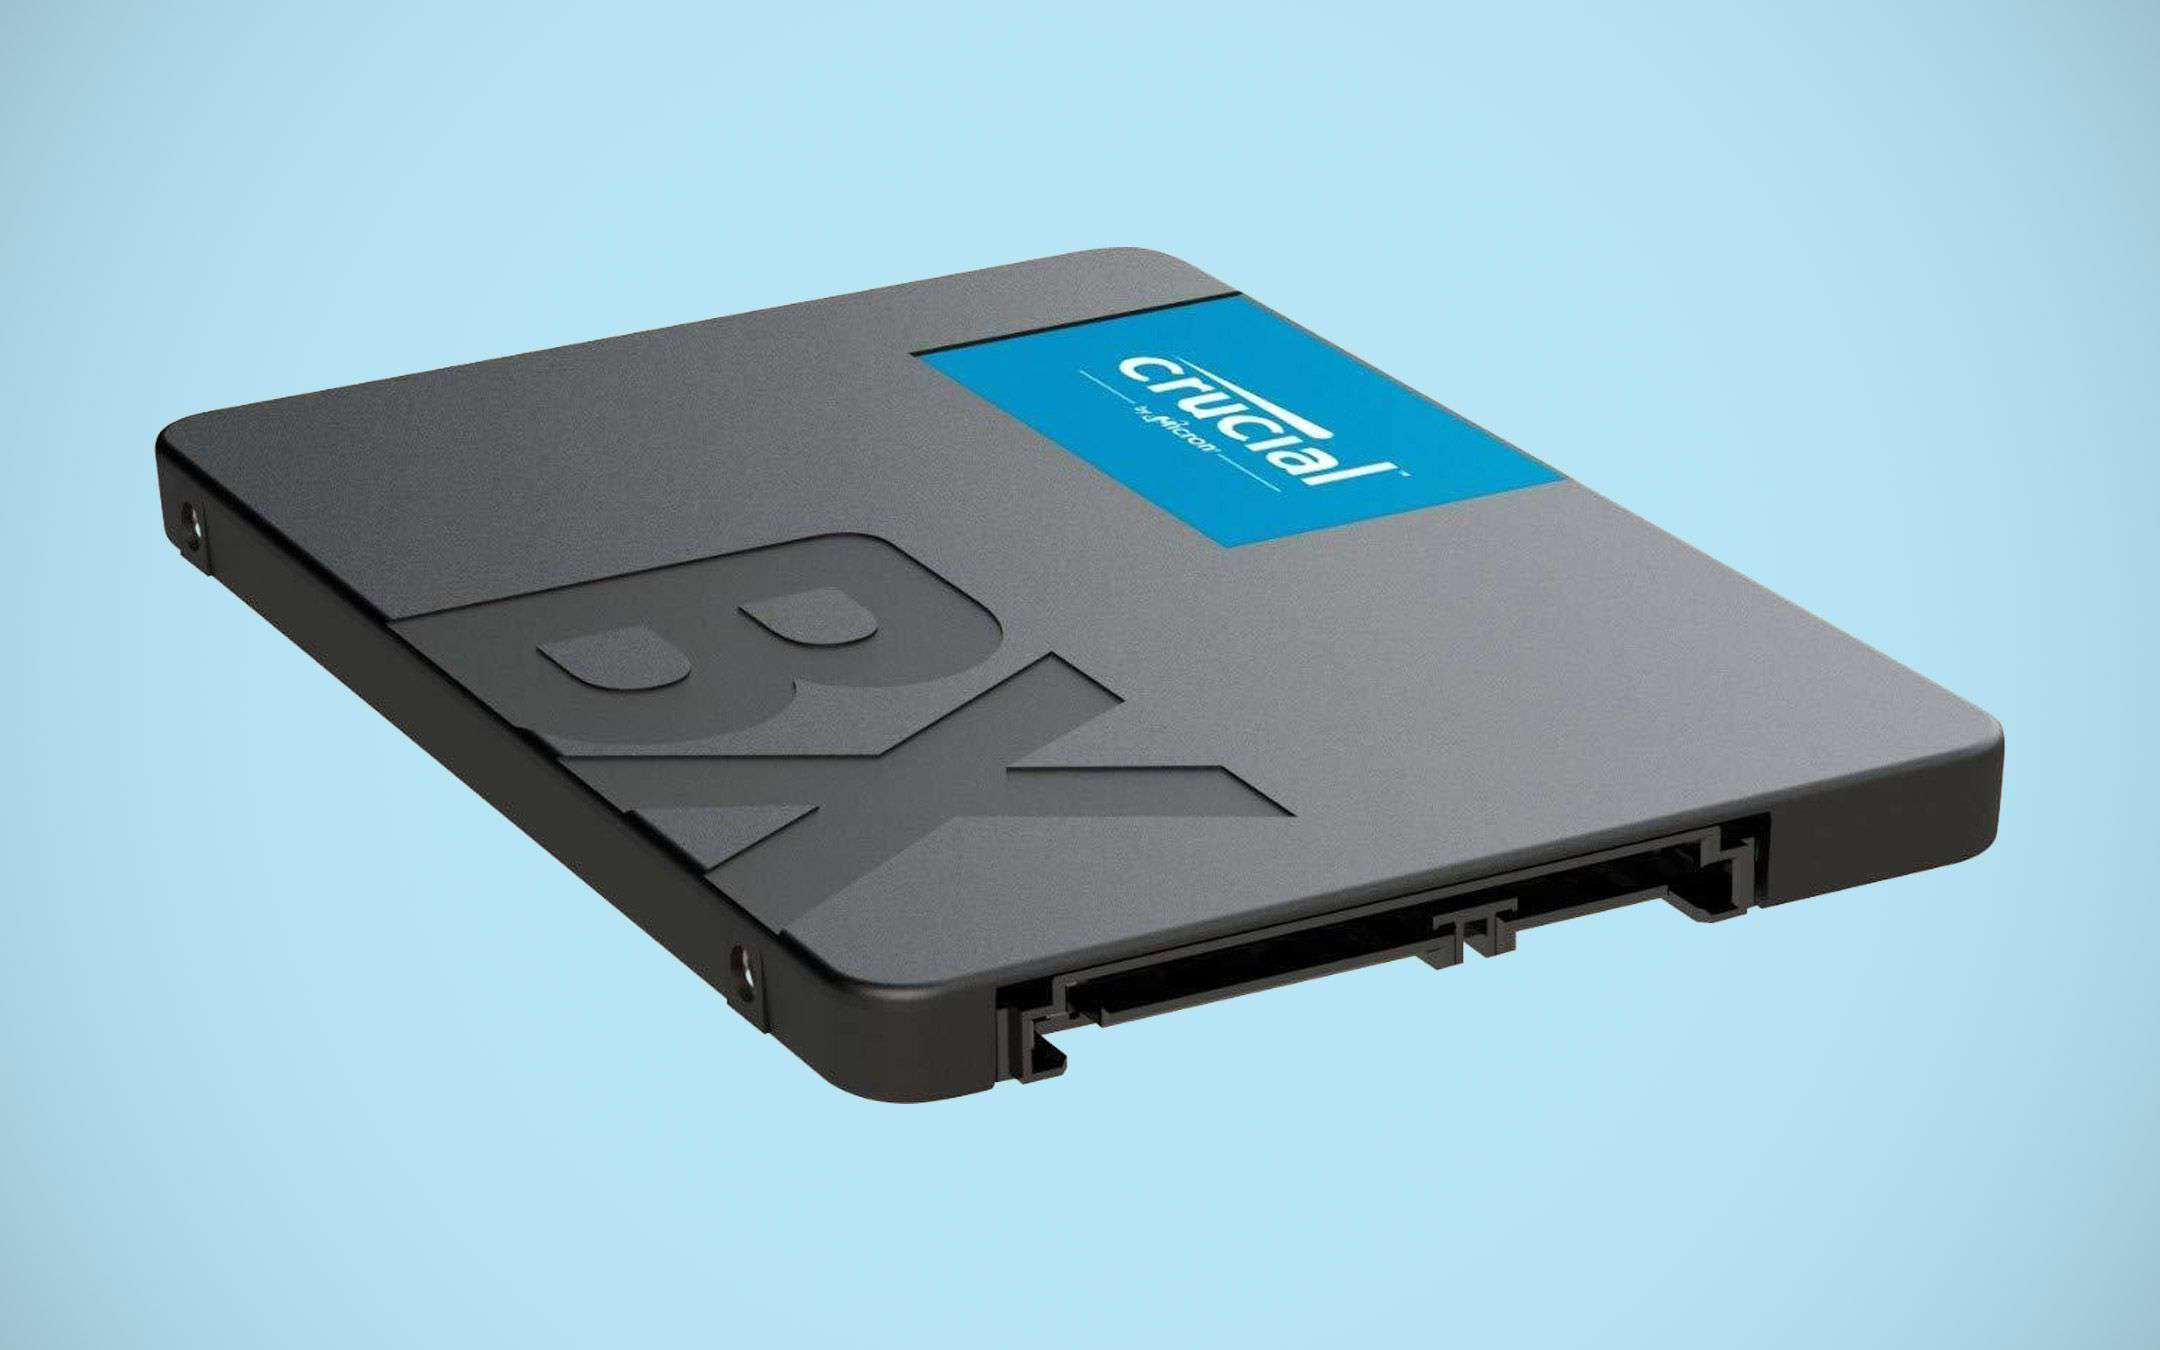 Two 240 GB SSDs on offer for 29.99 euros